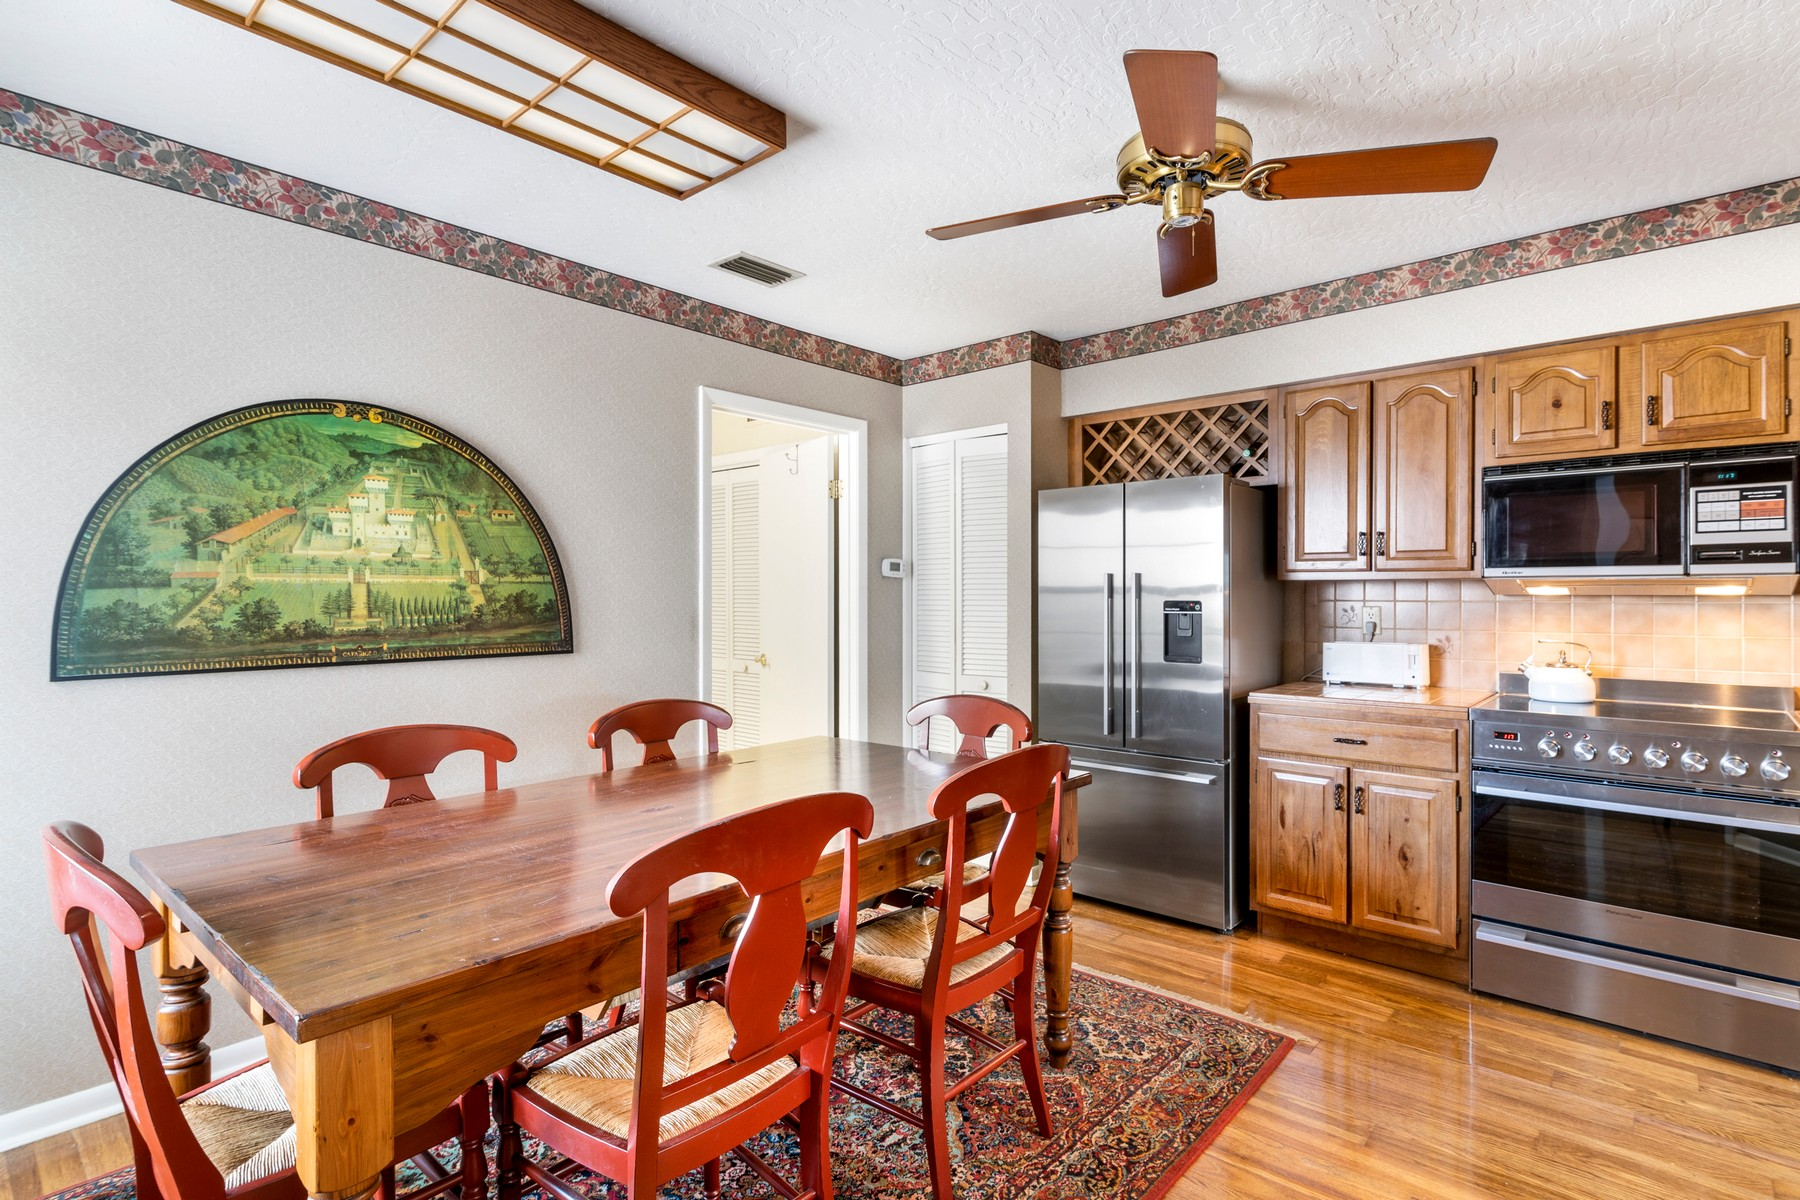 Additional photo for property listing at Majorca South 404 La Costa Street Melbourne Beach, Florida 32951 United States